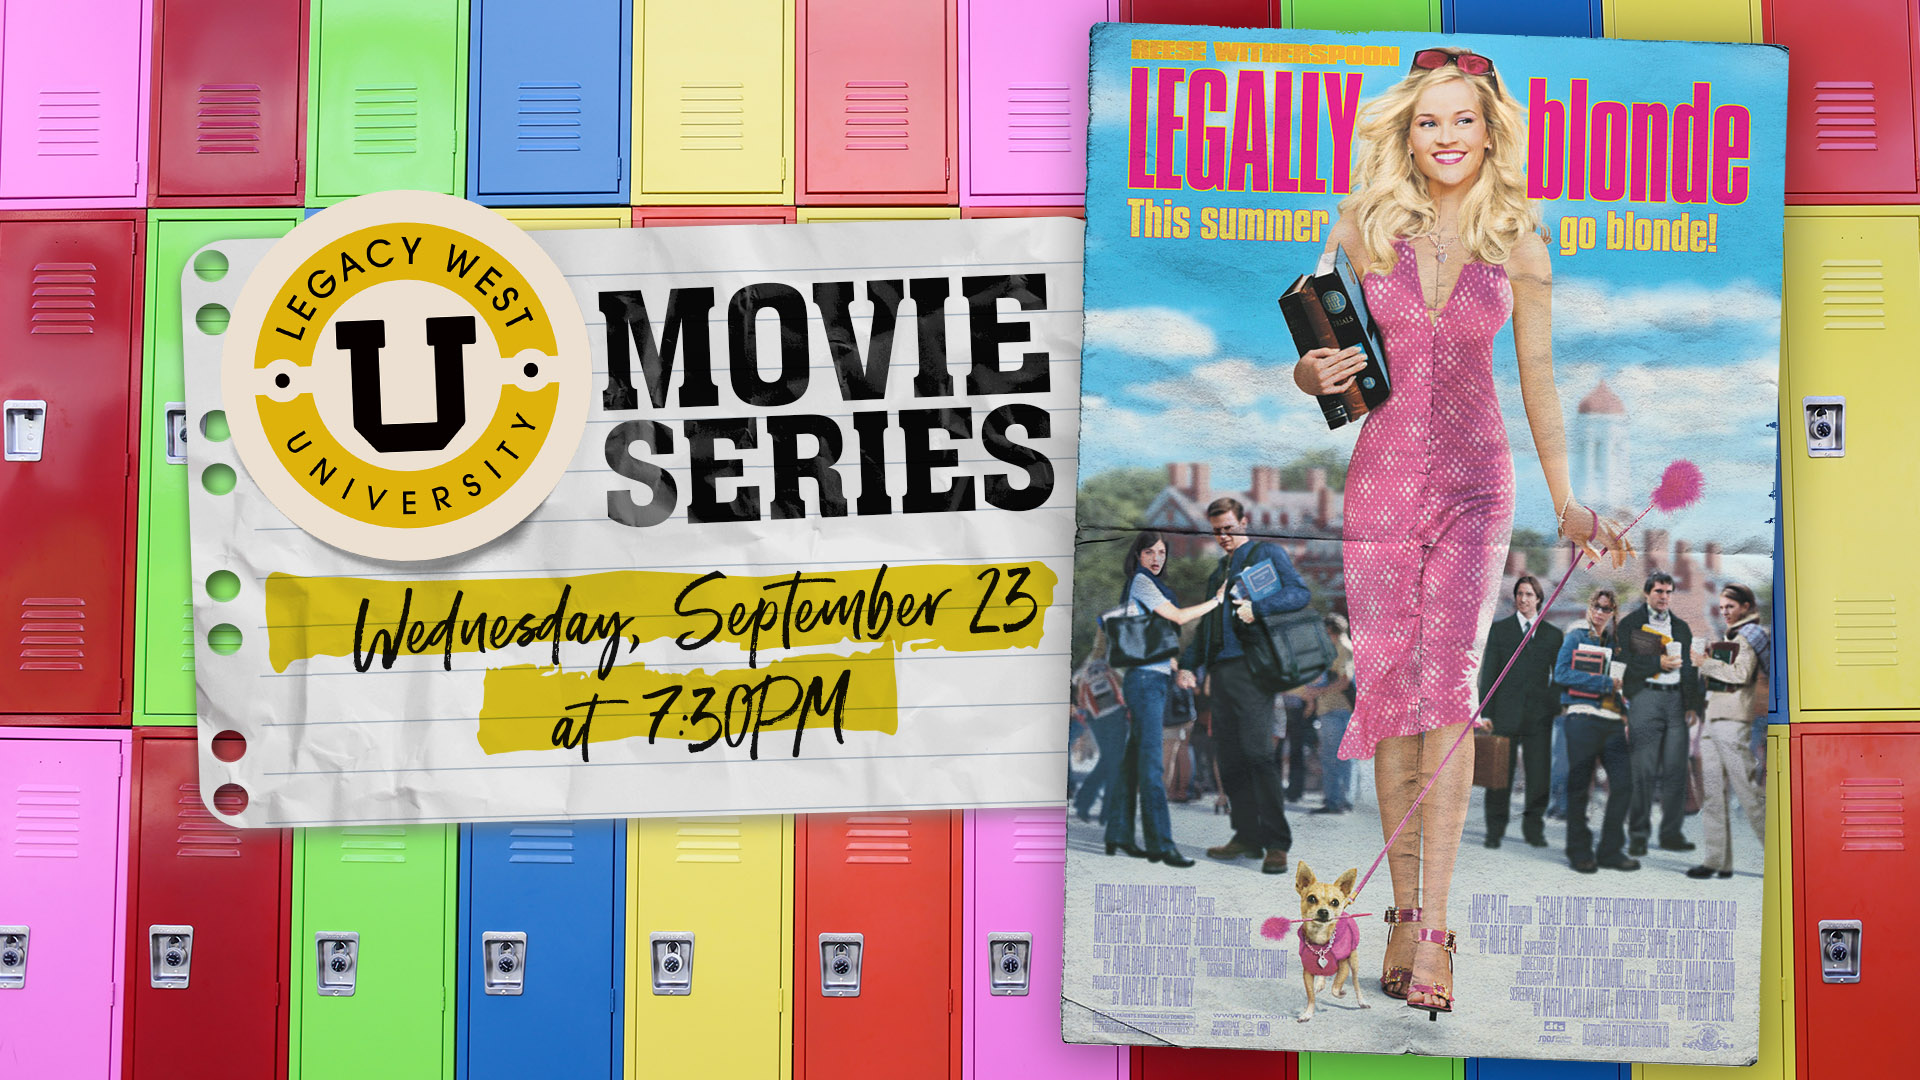 Promo image of Legacy West University Movie Series: Legally Blonde